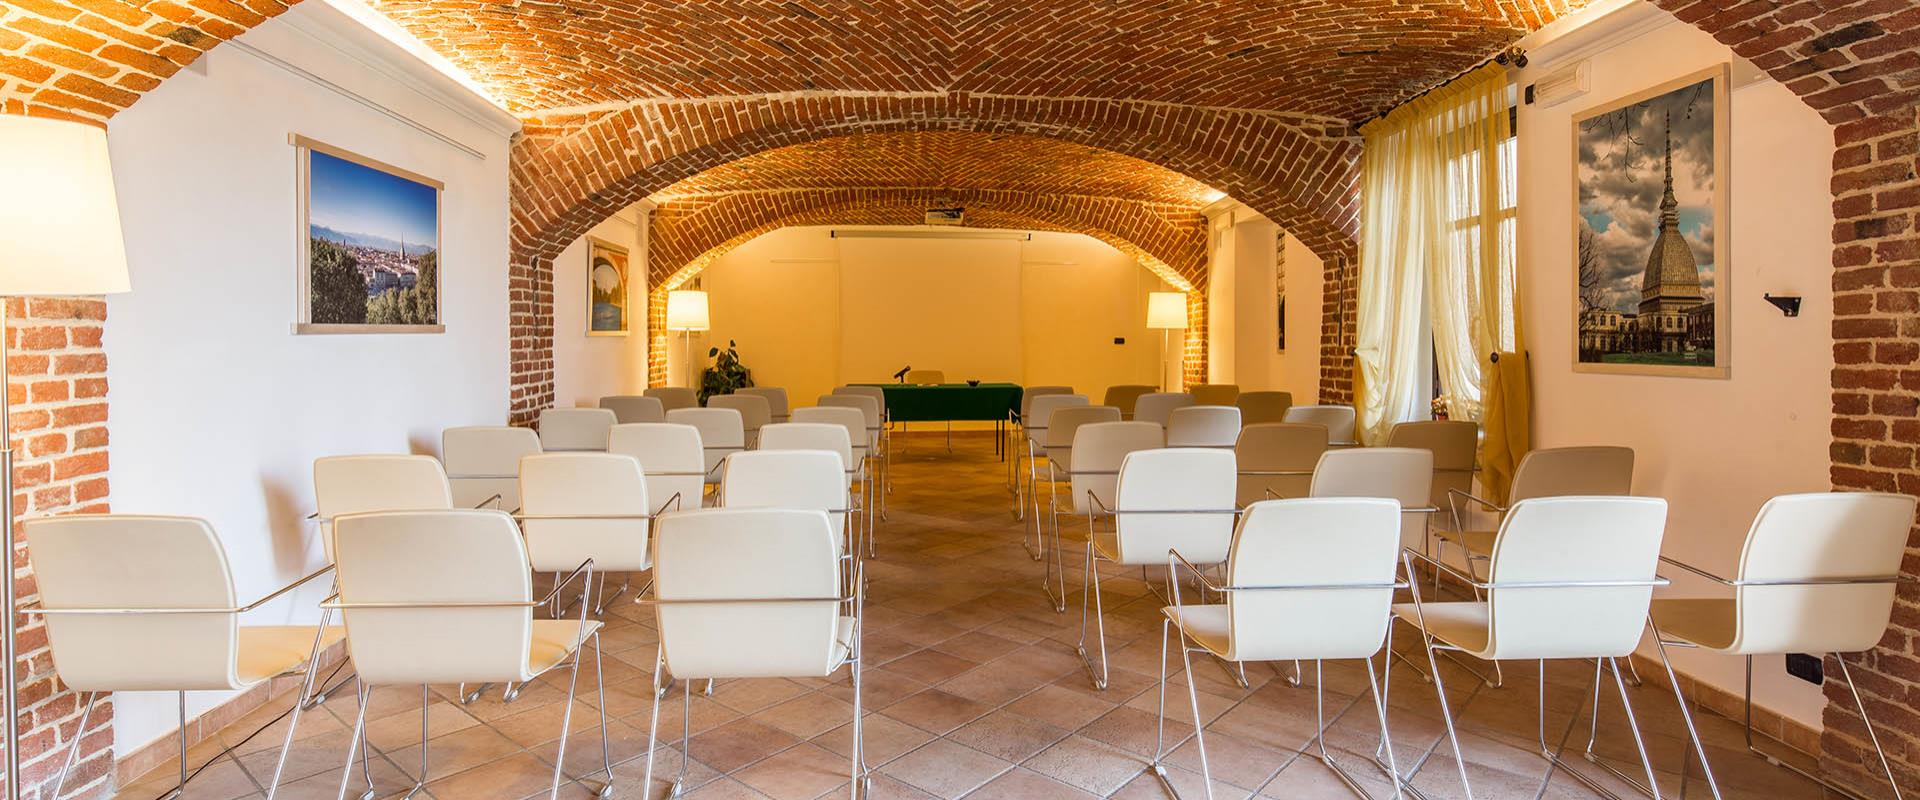 A meeting room exclusively for your events?  At 10 minutes from Turin airport, ... choose the Best Western Plus guarantee!